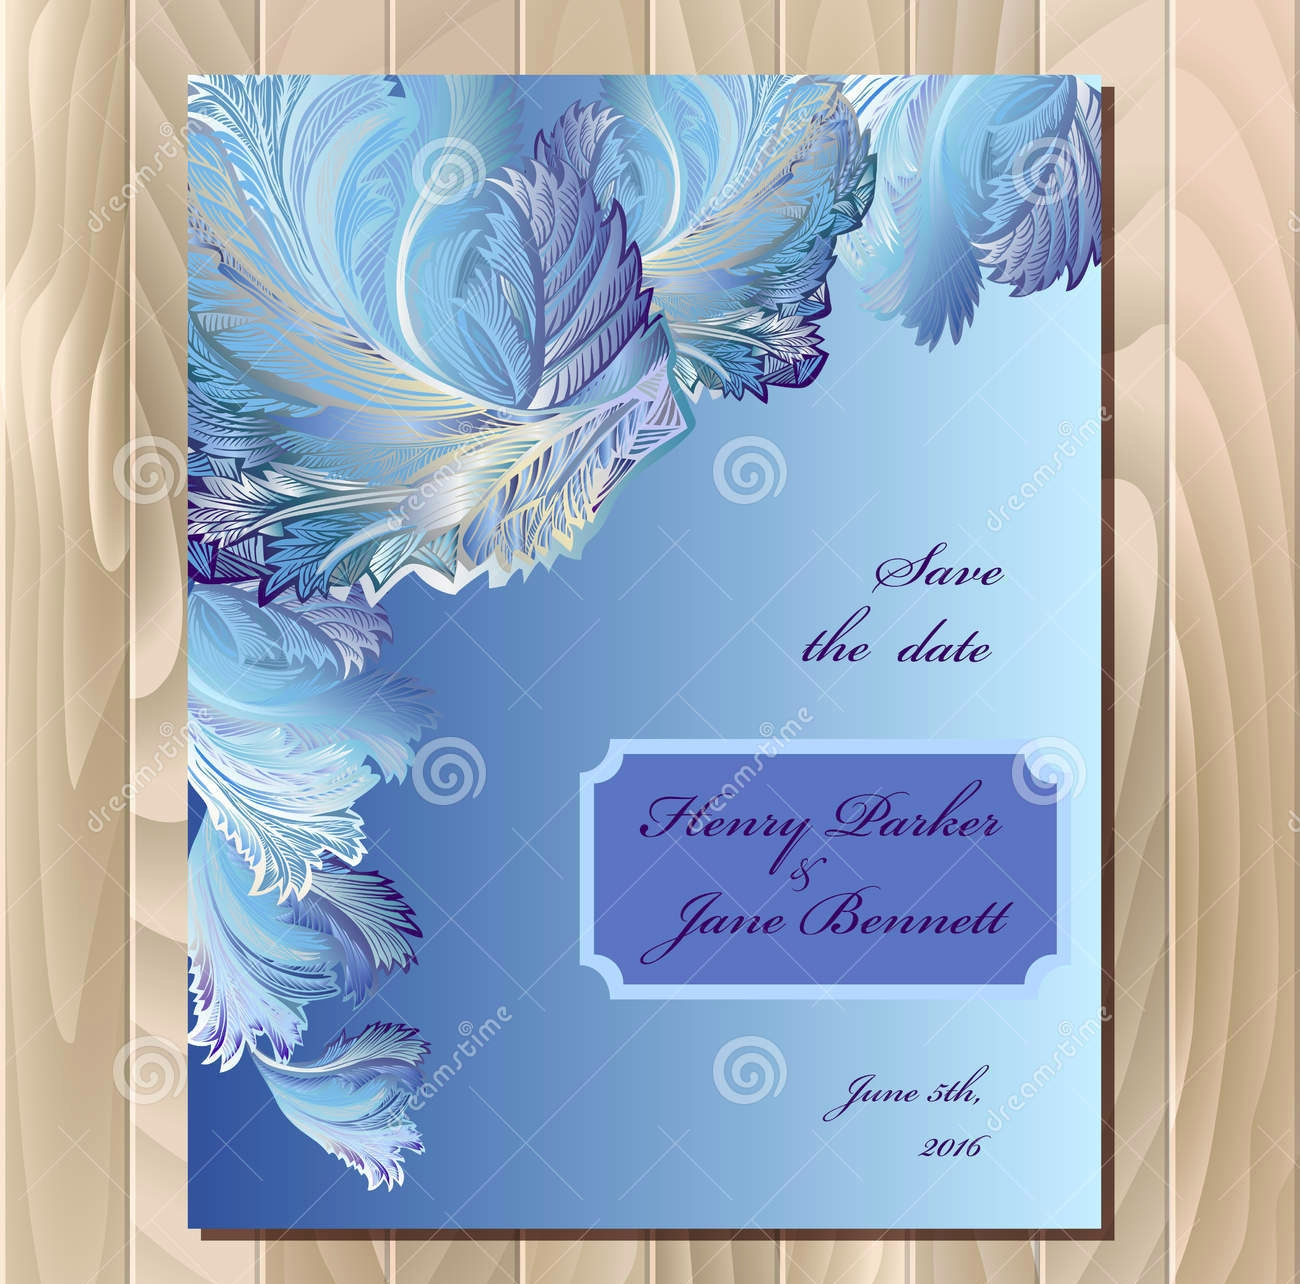 frozen wedding party invitation